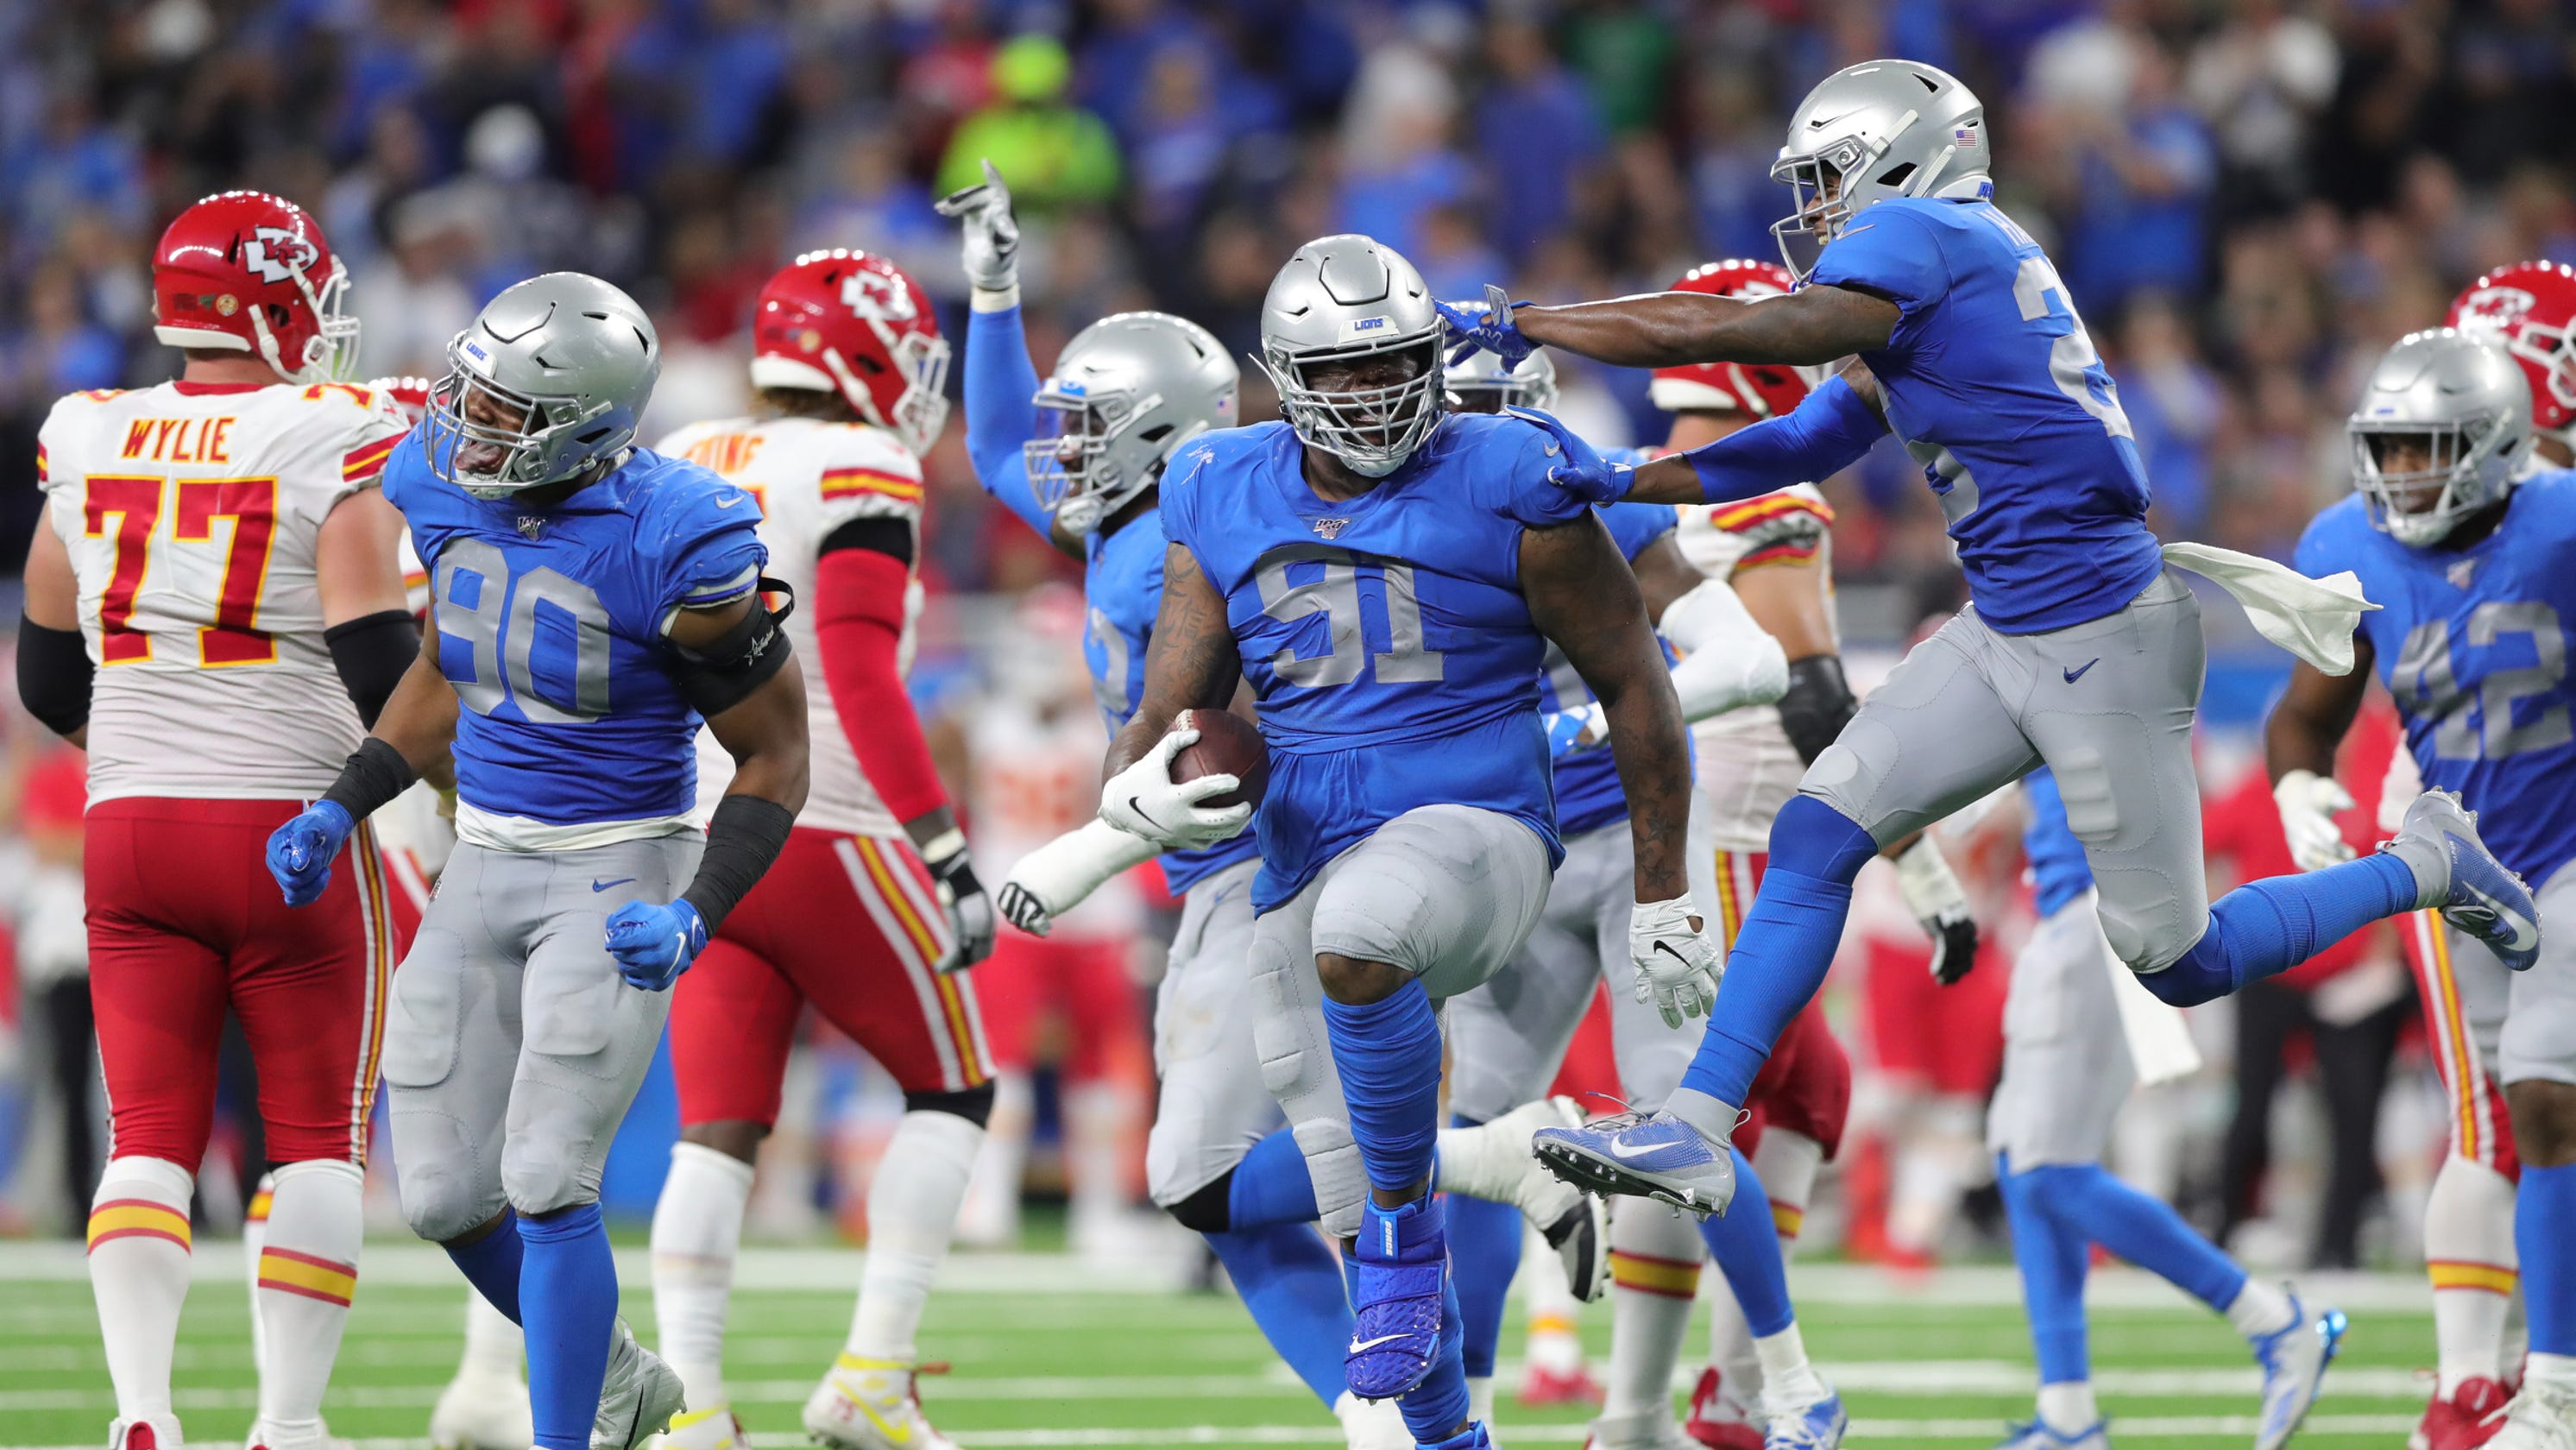 Mitch Albom: Detroit Lions' loss to Chiefs nothing to be happy about - Detroit Free Press